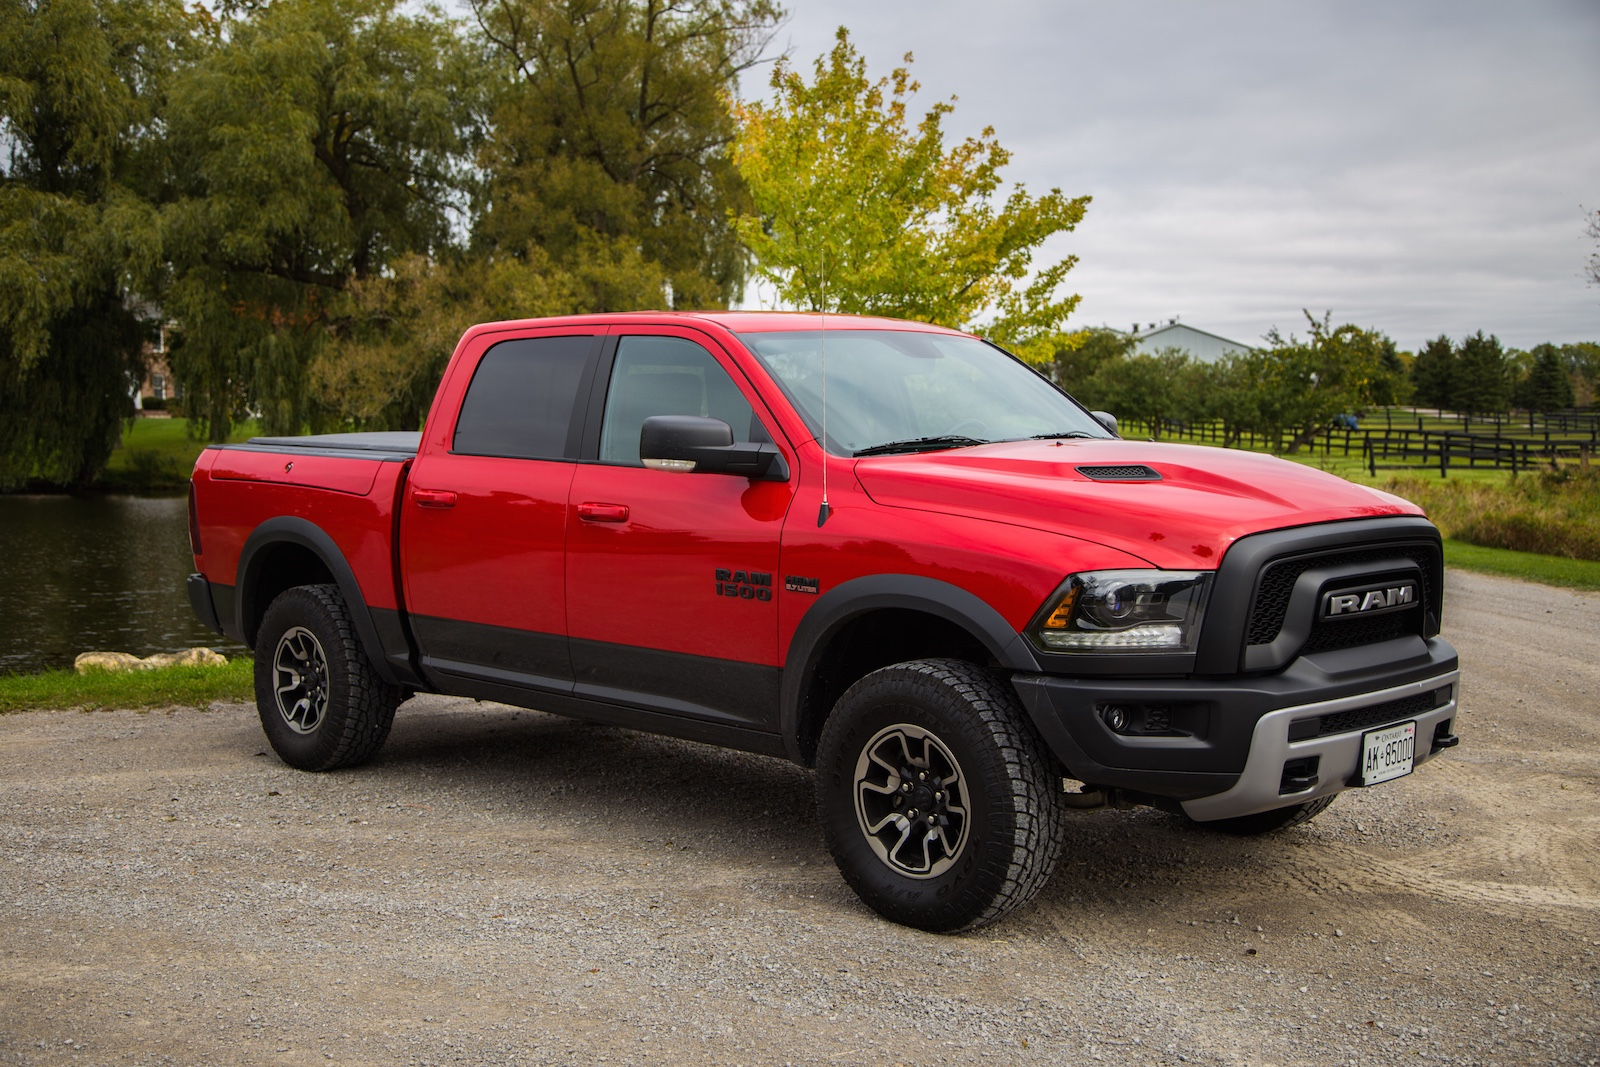 Ram Rebel Price >> Review: 2015 Ram 1500 Rebel | Canadian Auto Review